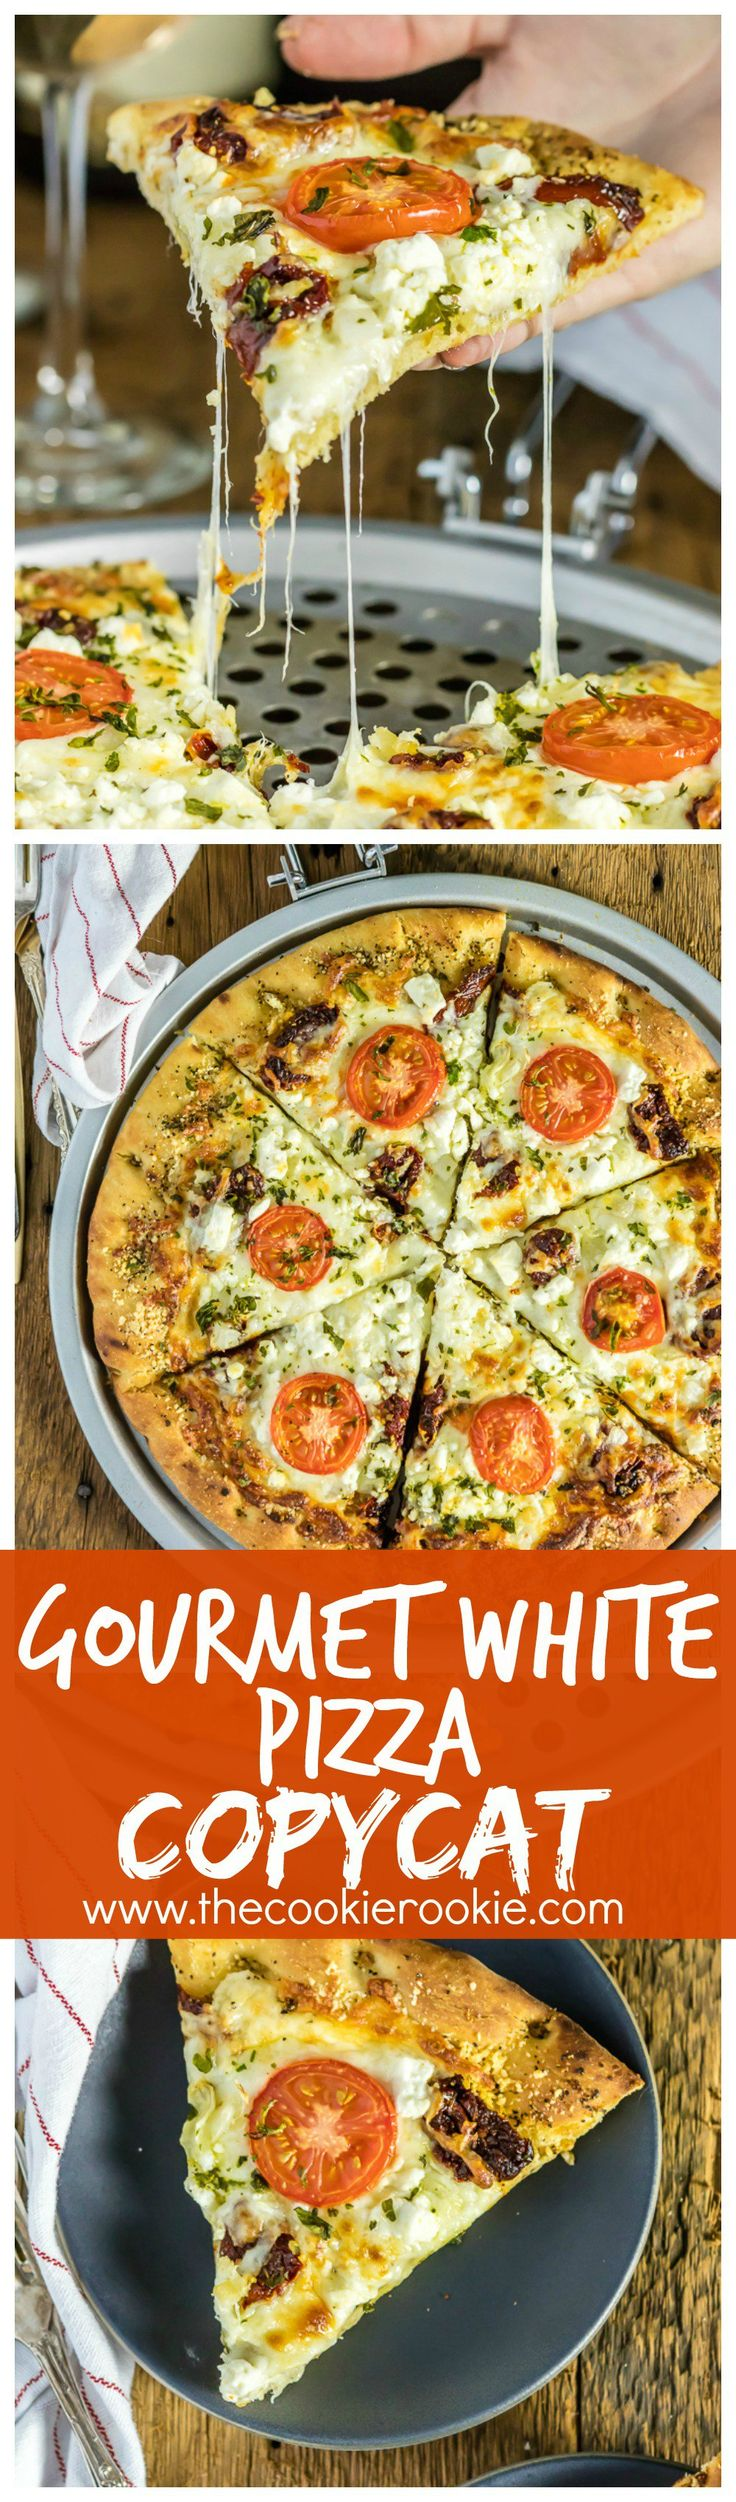 Easy Gourmet White Pizza Copycat. This pizza is SO GOOD! Made to be like the popular Mellow Mushroom Pizza favorite. Lots of cheese, two types of tomatoes, and an olive oil garlic base. BEST RECIPE EVER!